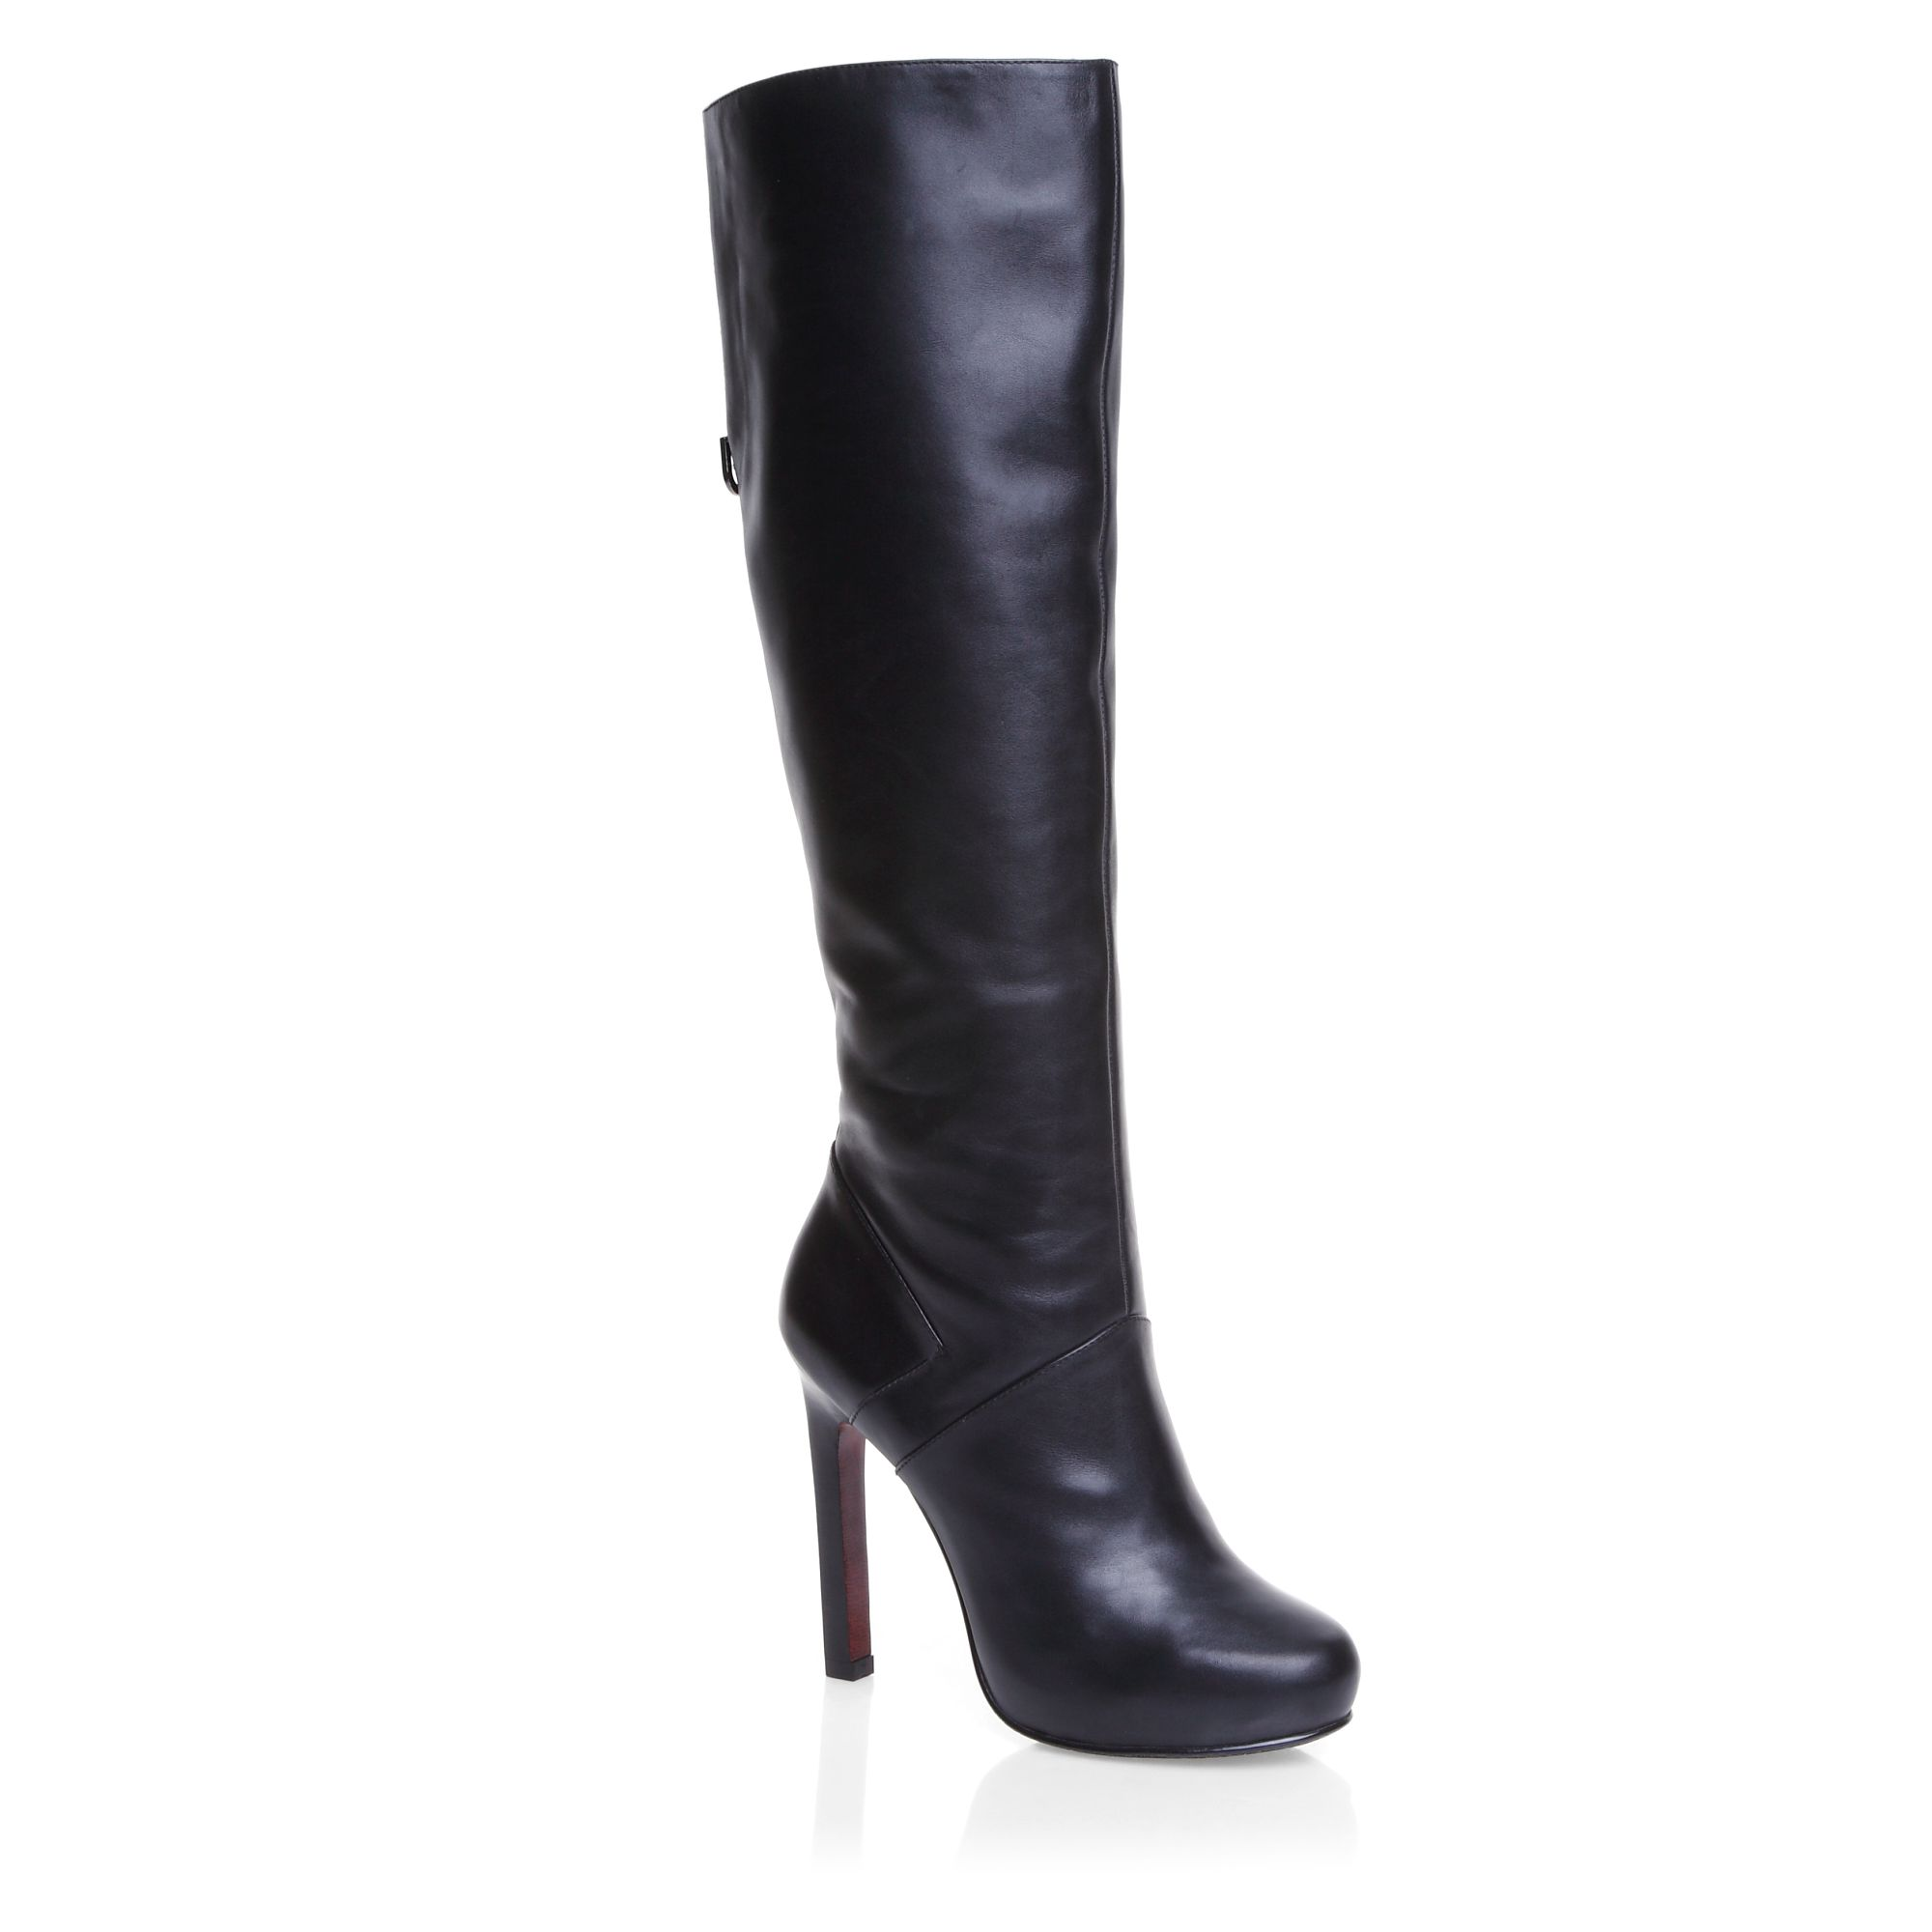 High heeled high leg elegant boots